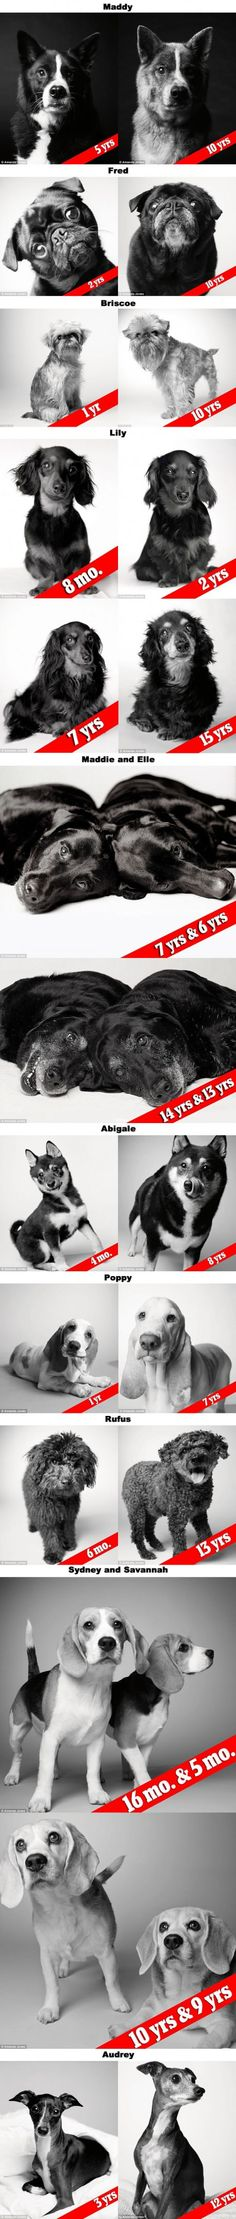 """""""Dog Years"""" - Portraits Of Aging Dogs That Will Melt Your Heart (By Photographer Amanda Jones)"""